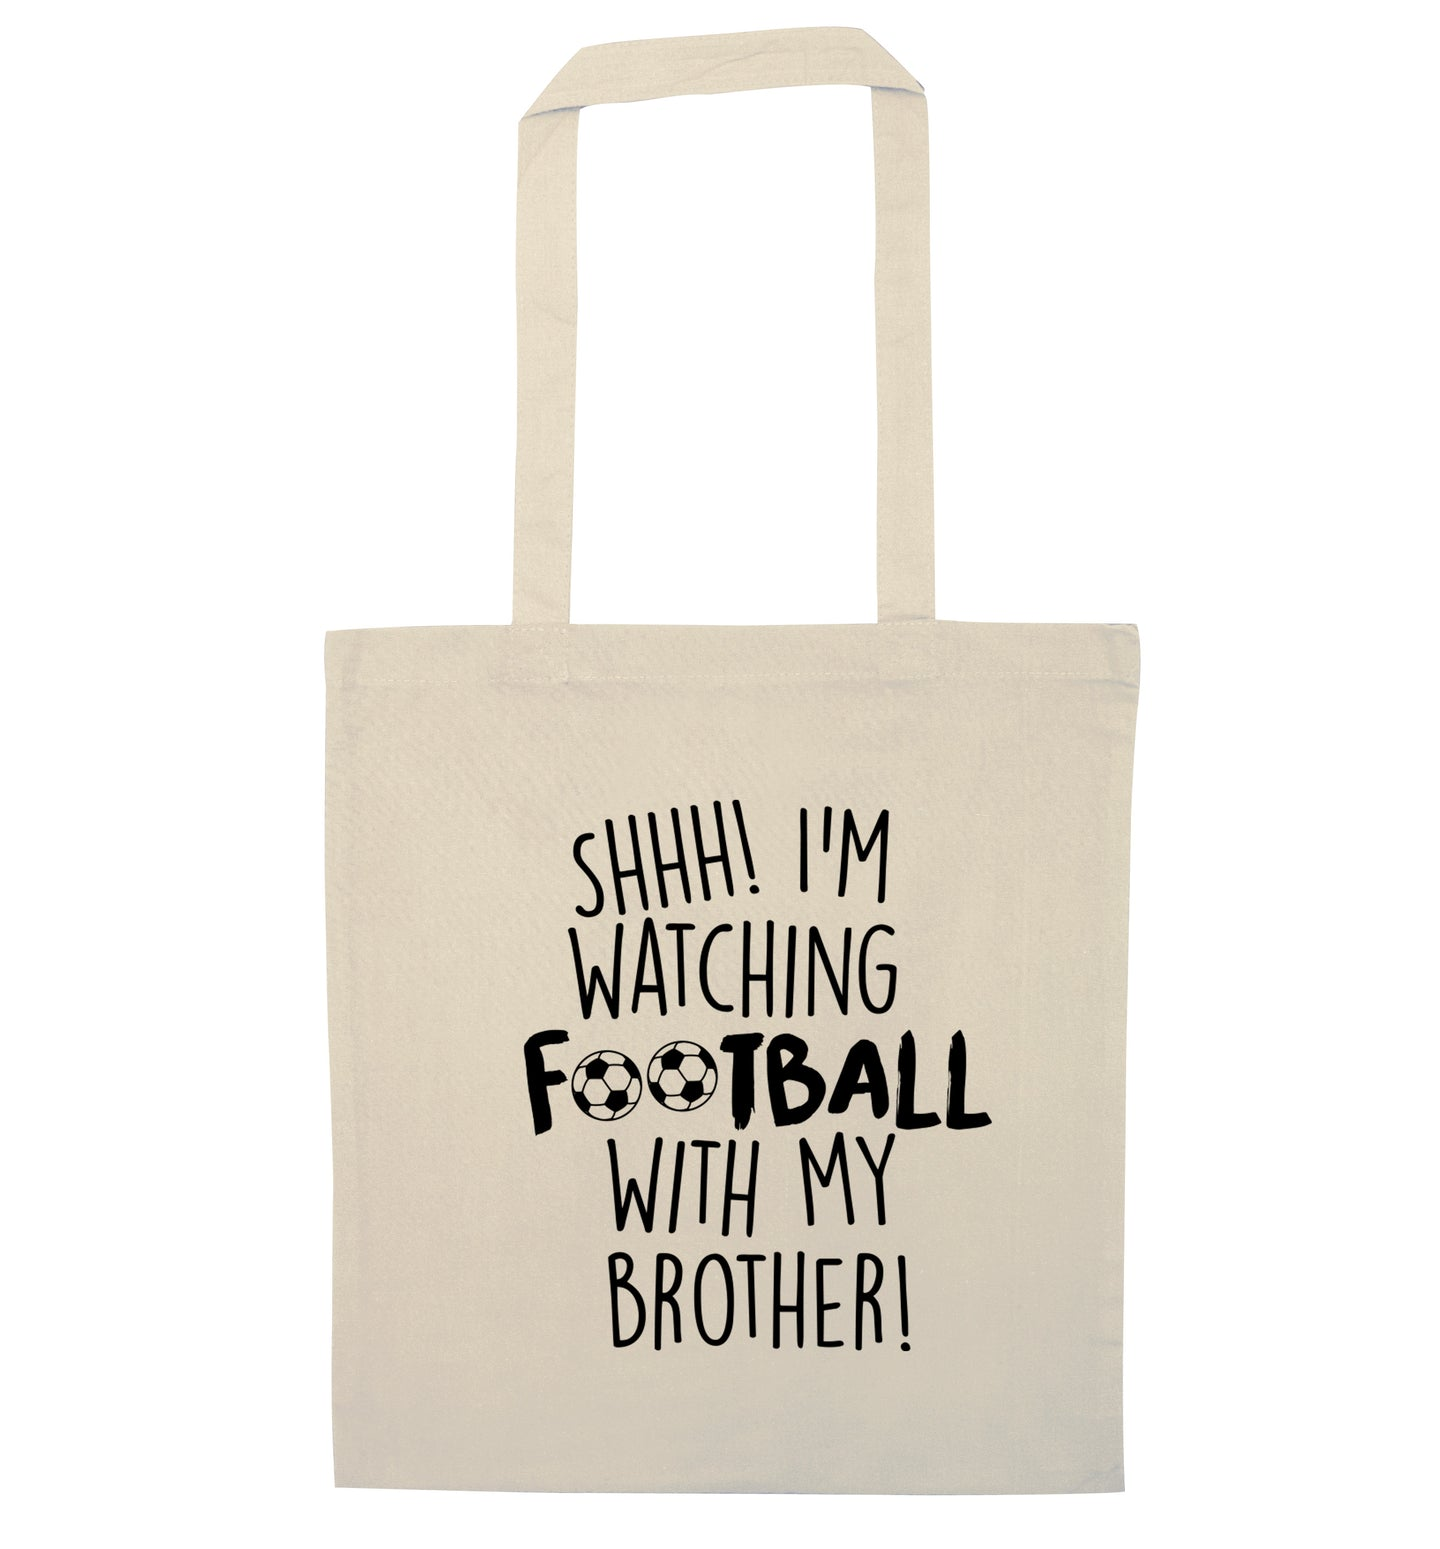 Shhh I'm watching football with my brother natural tote bag